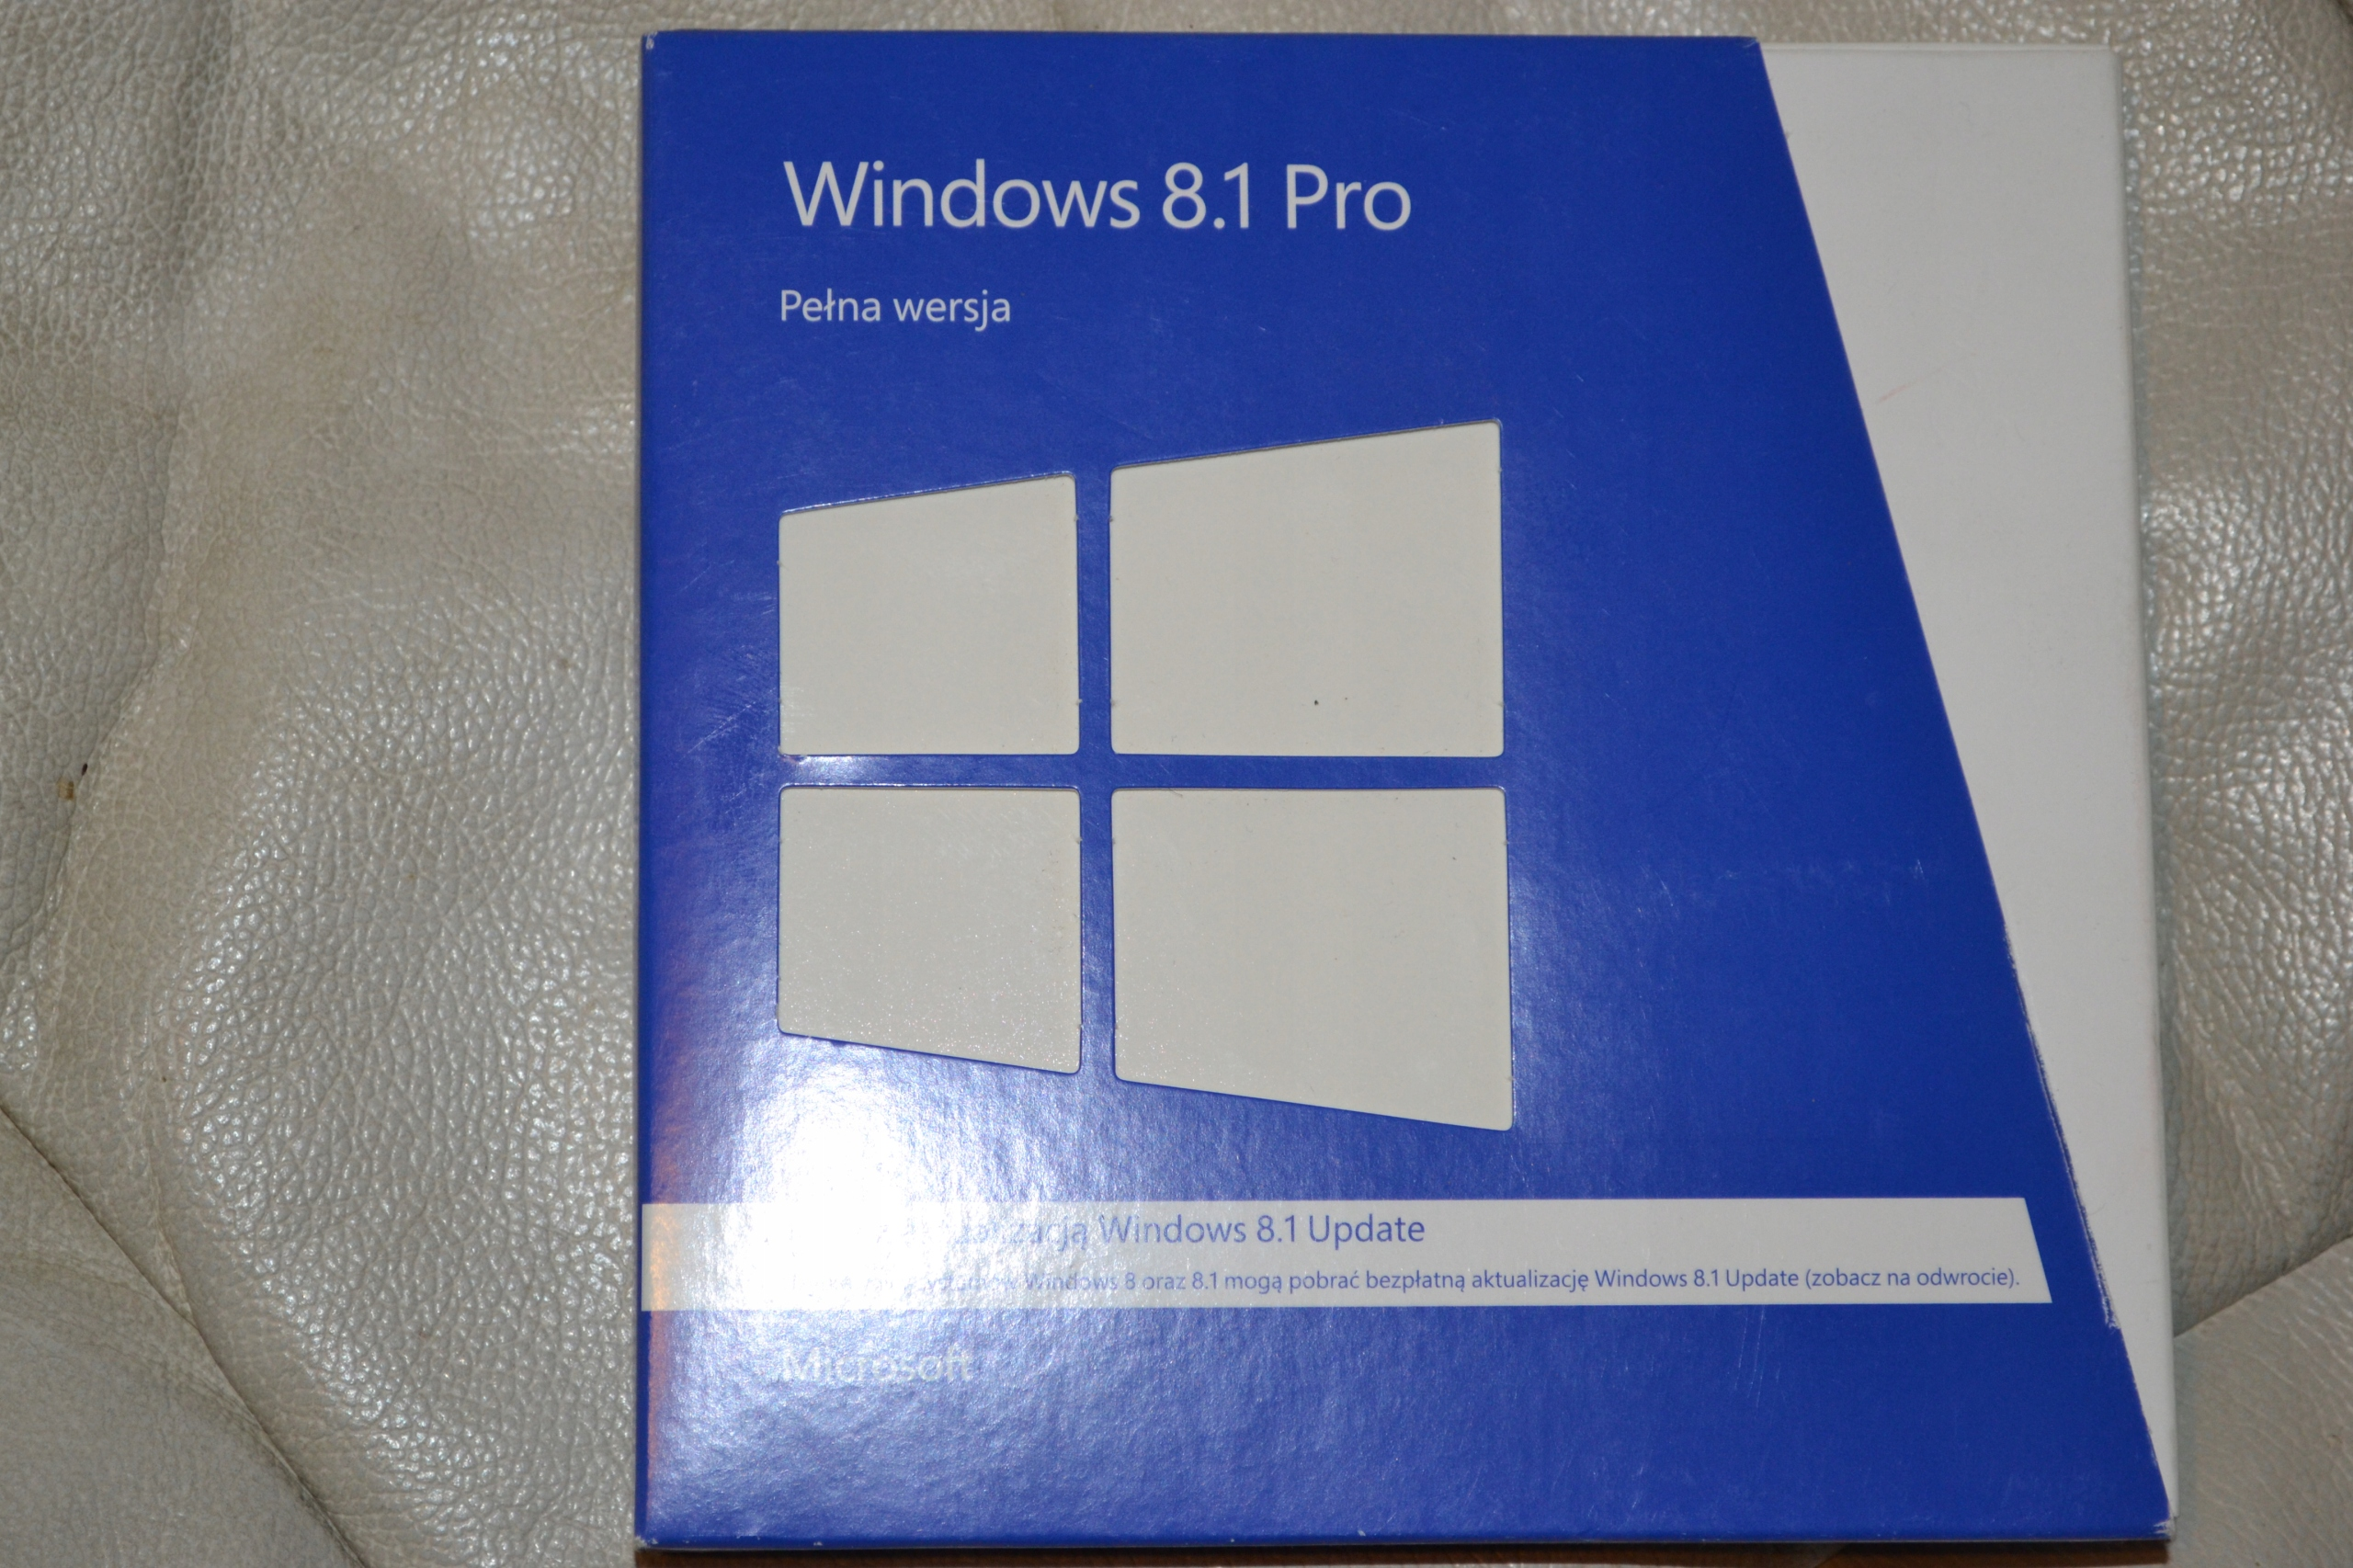 Ms Windows 8.1 Pro Pena wersja Polska BOX